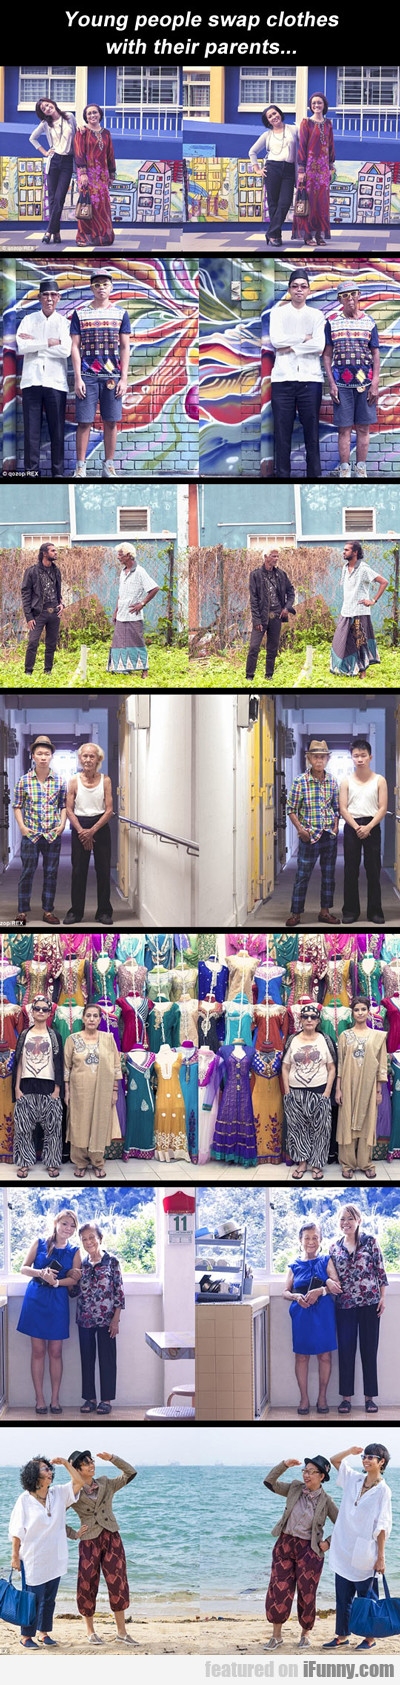 Young People Swap Clothes With Their Parents...